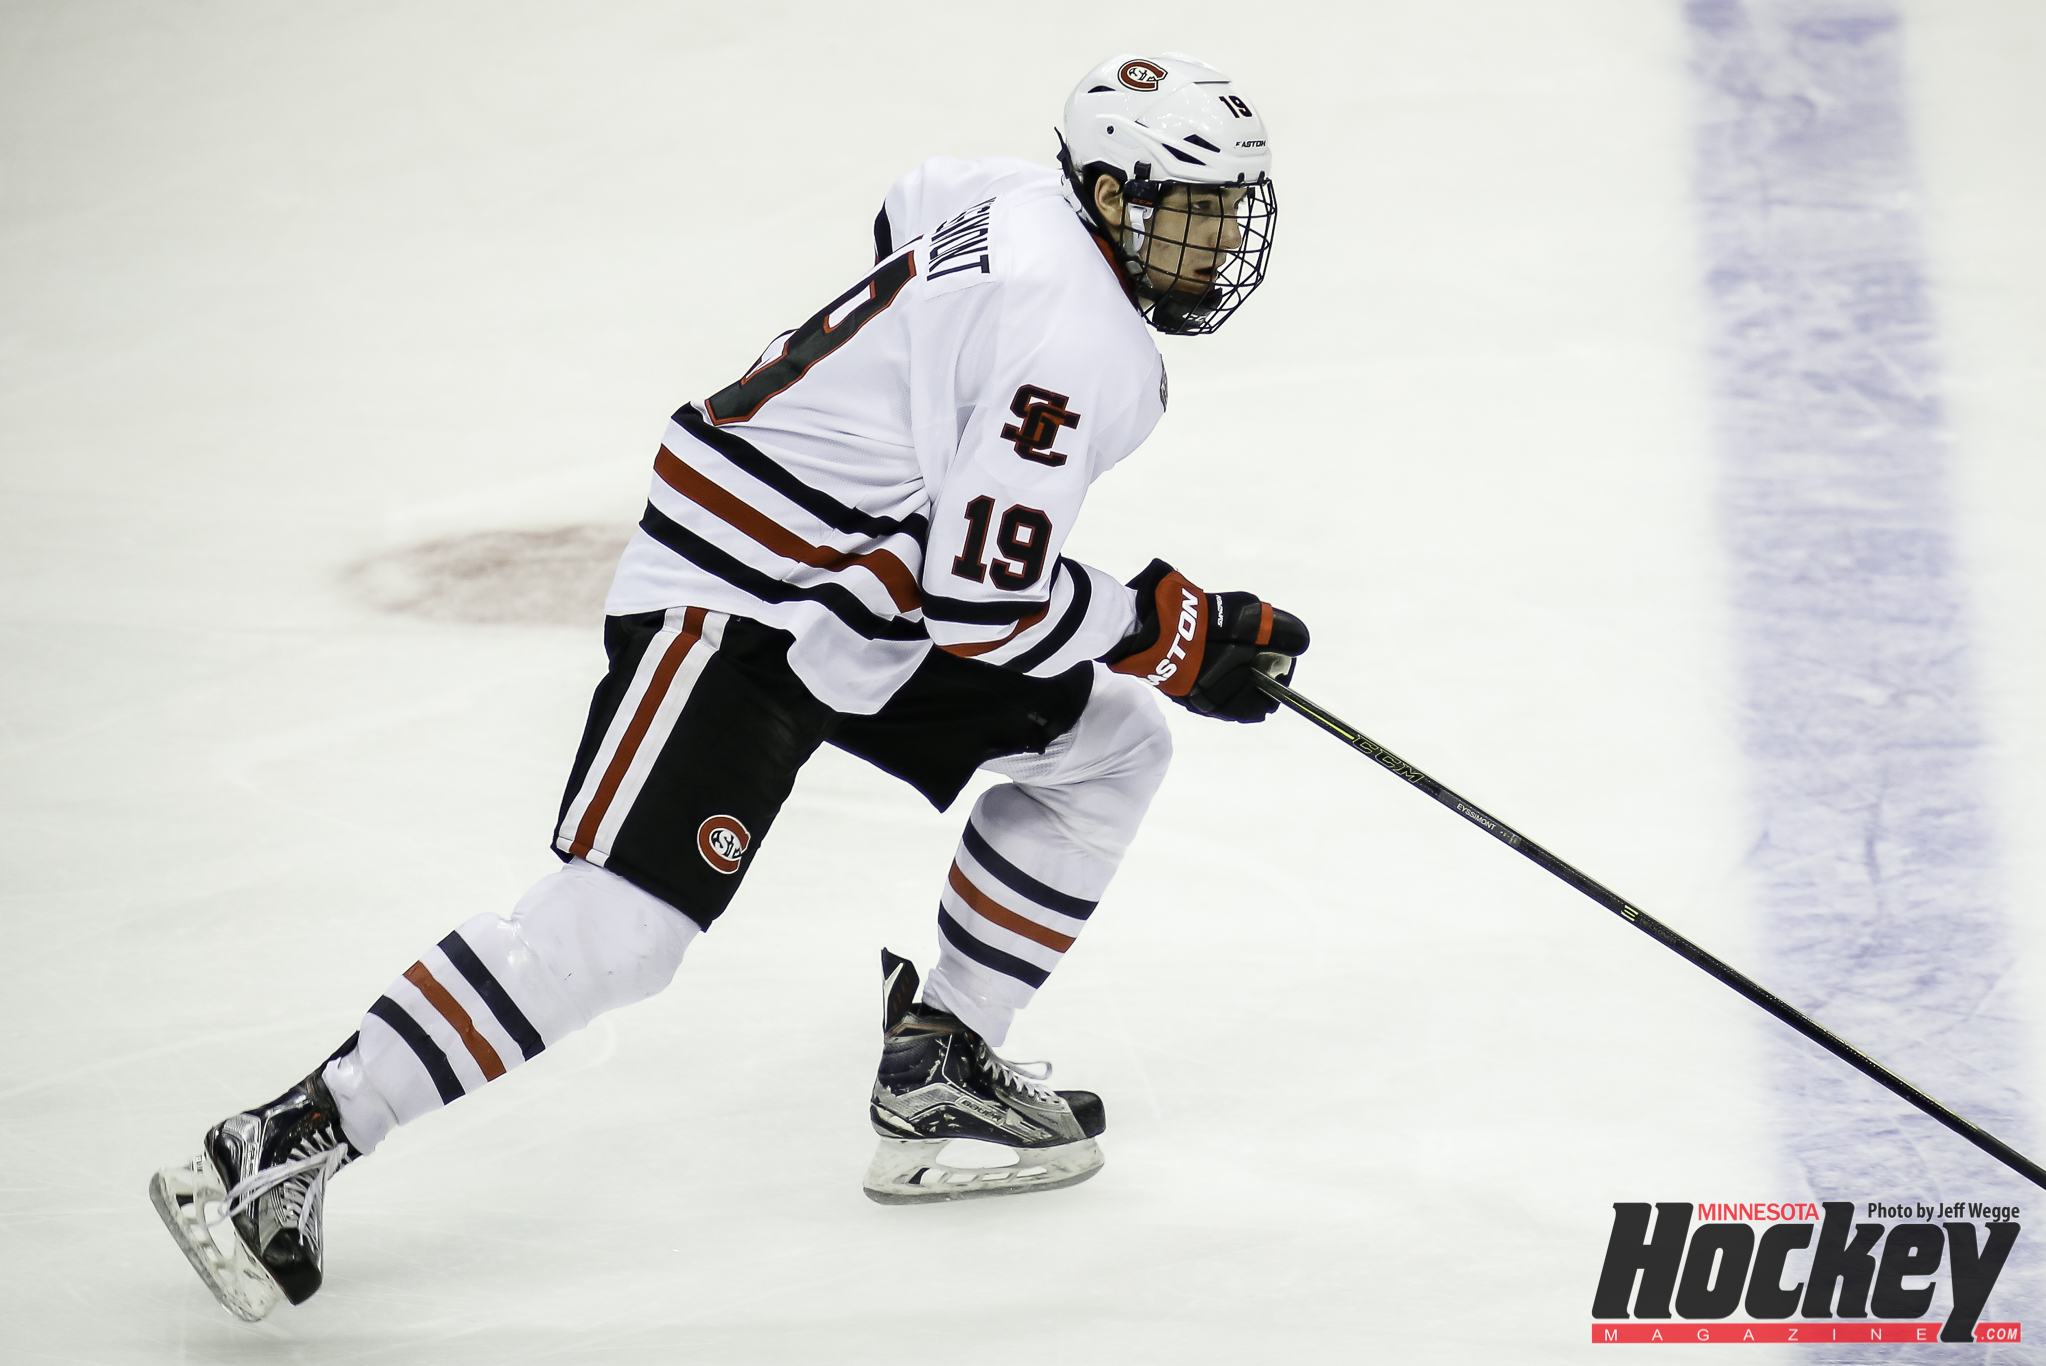 NCHC: St. Cloud State Season Preview